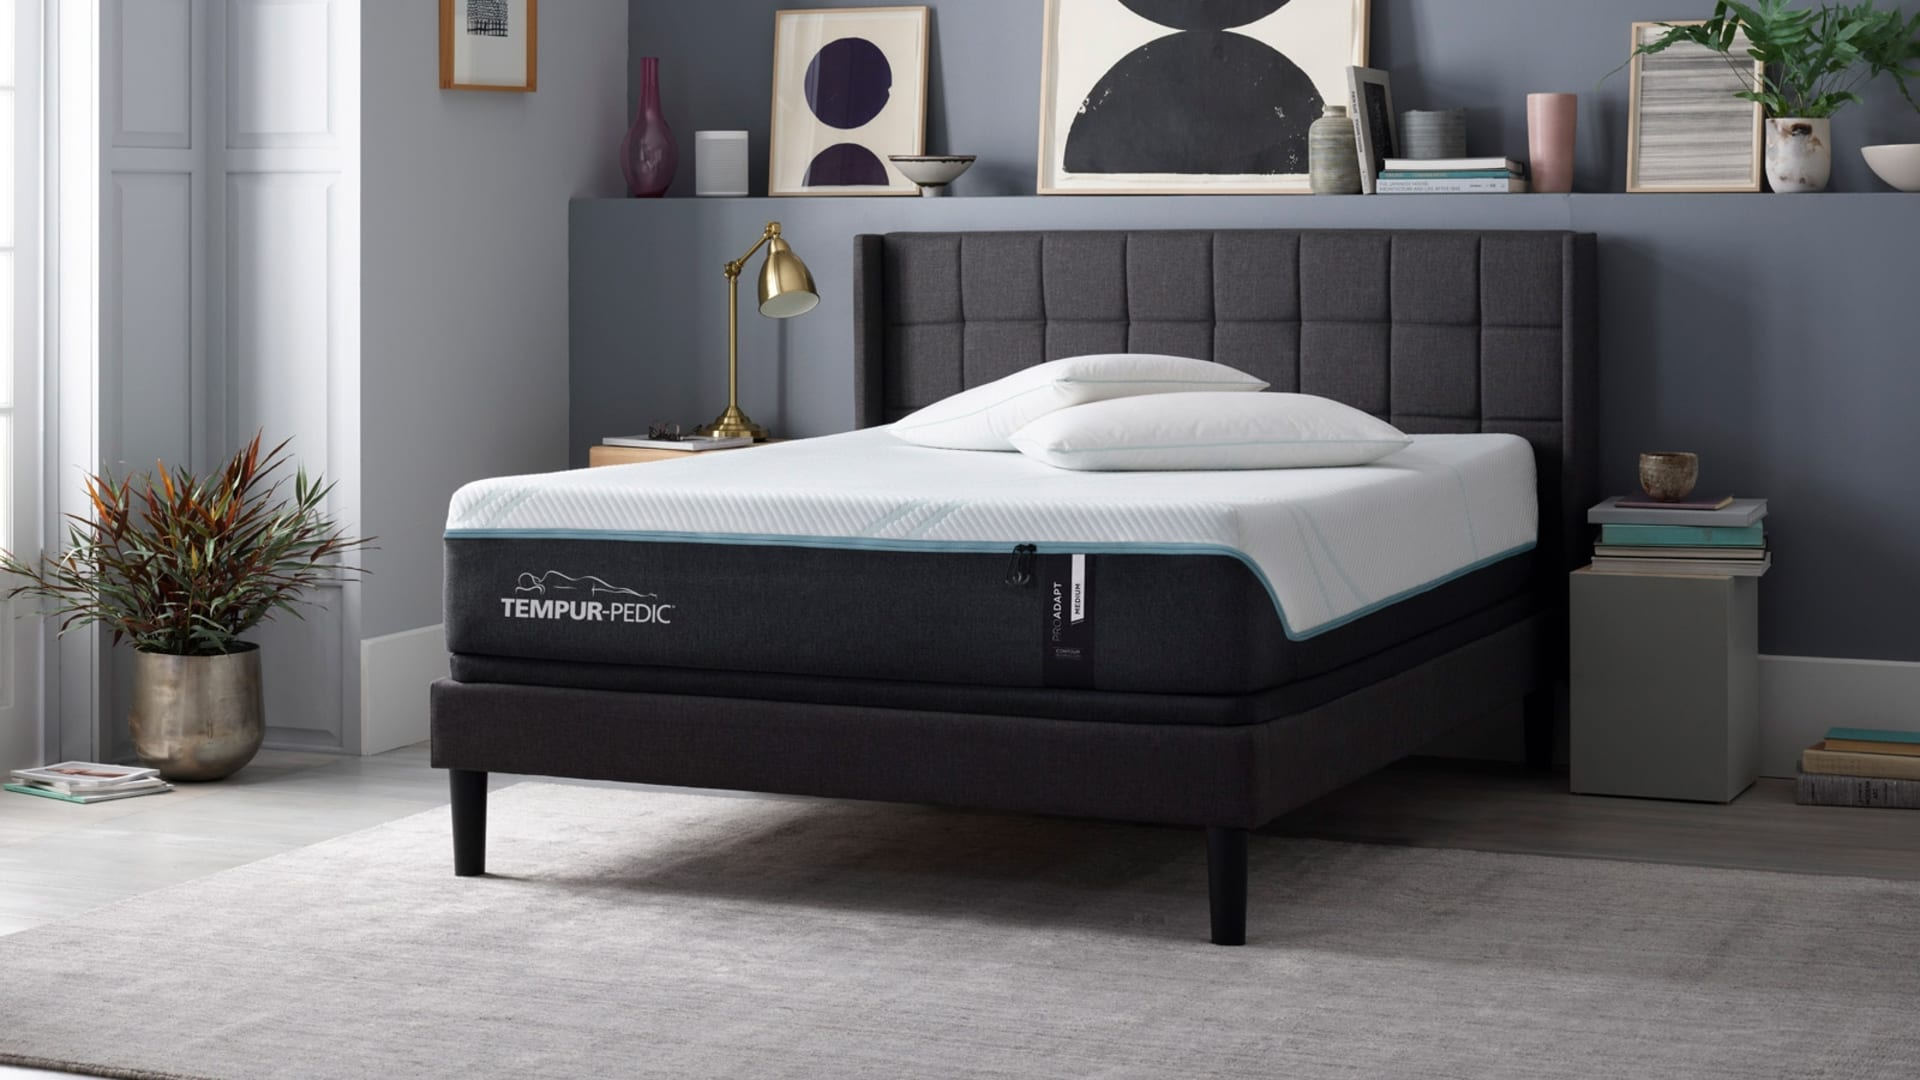 Queen Size Tempur-Pedic Pro Adapt Mattress